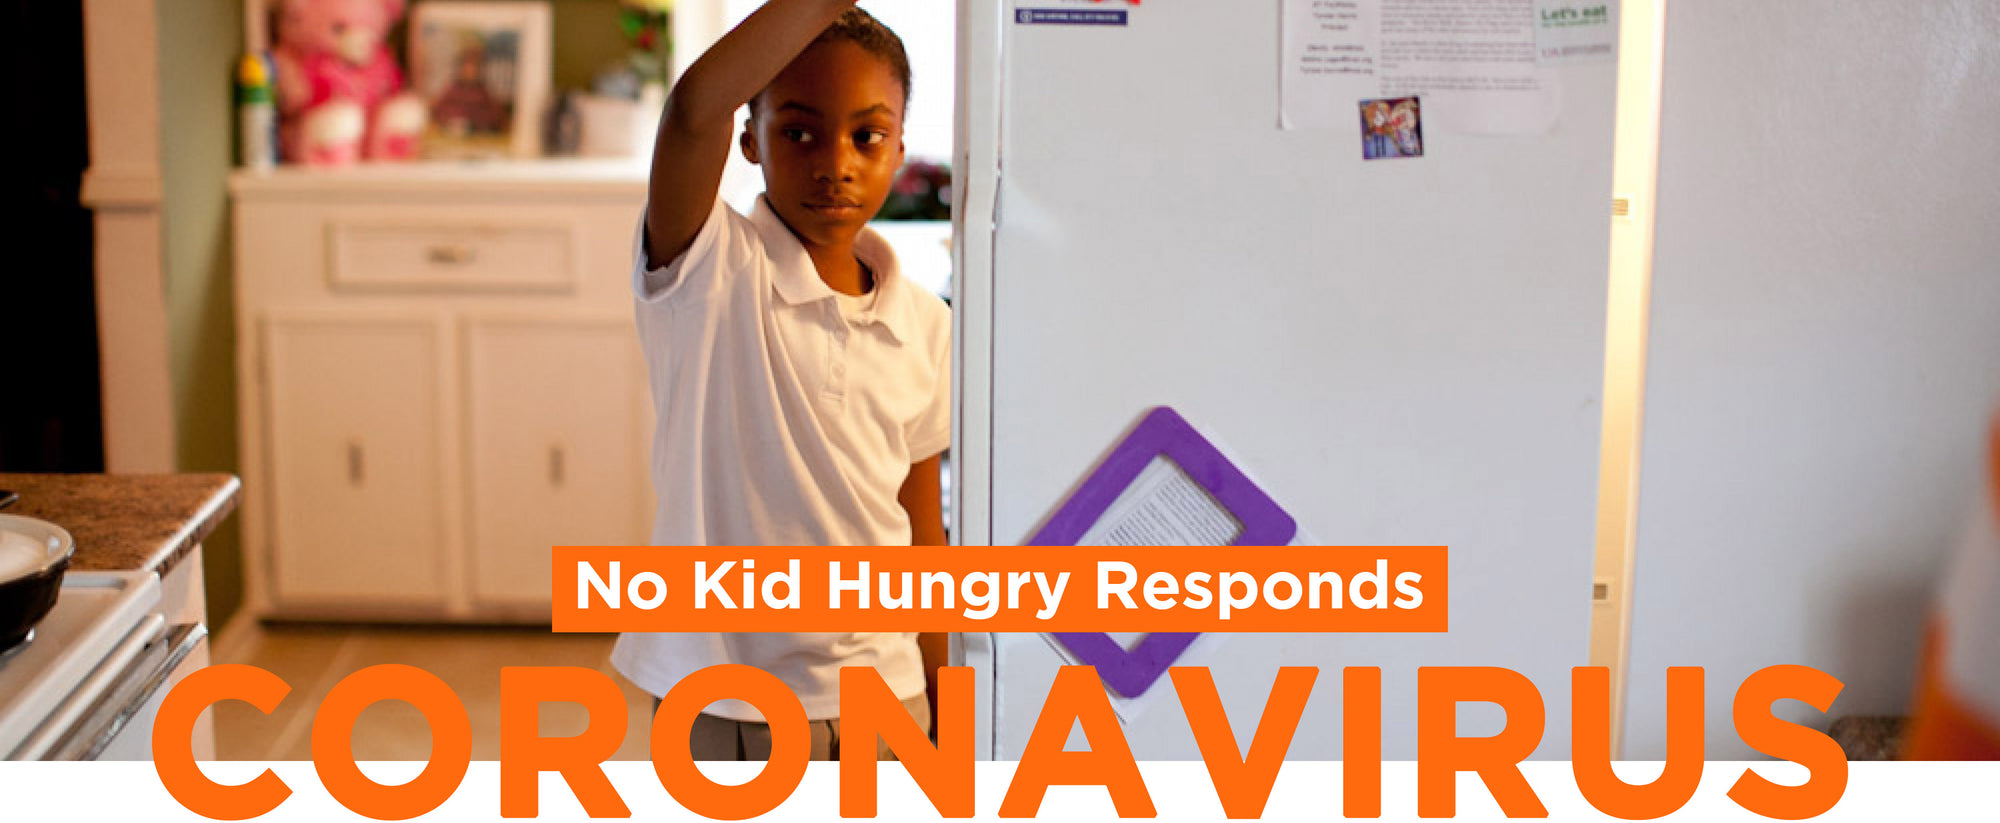 No Kid Hungry Responds Coronavirus